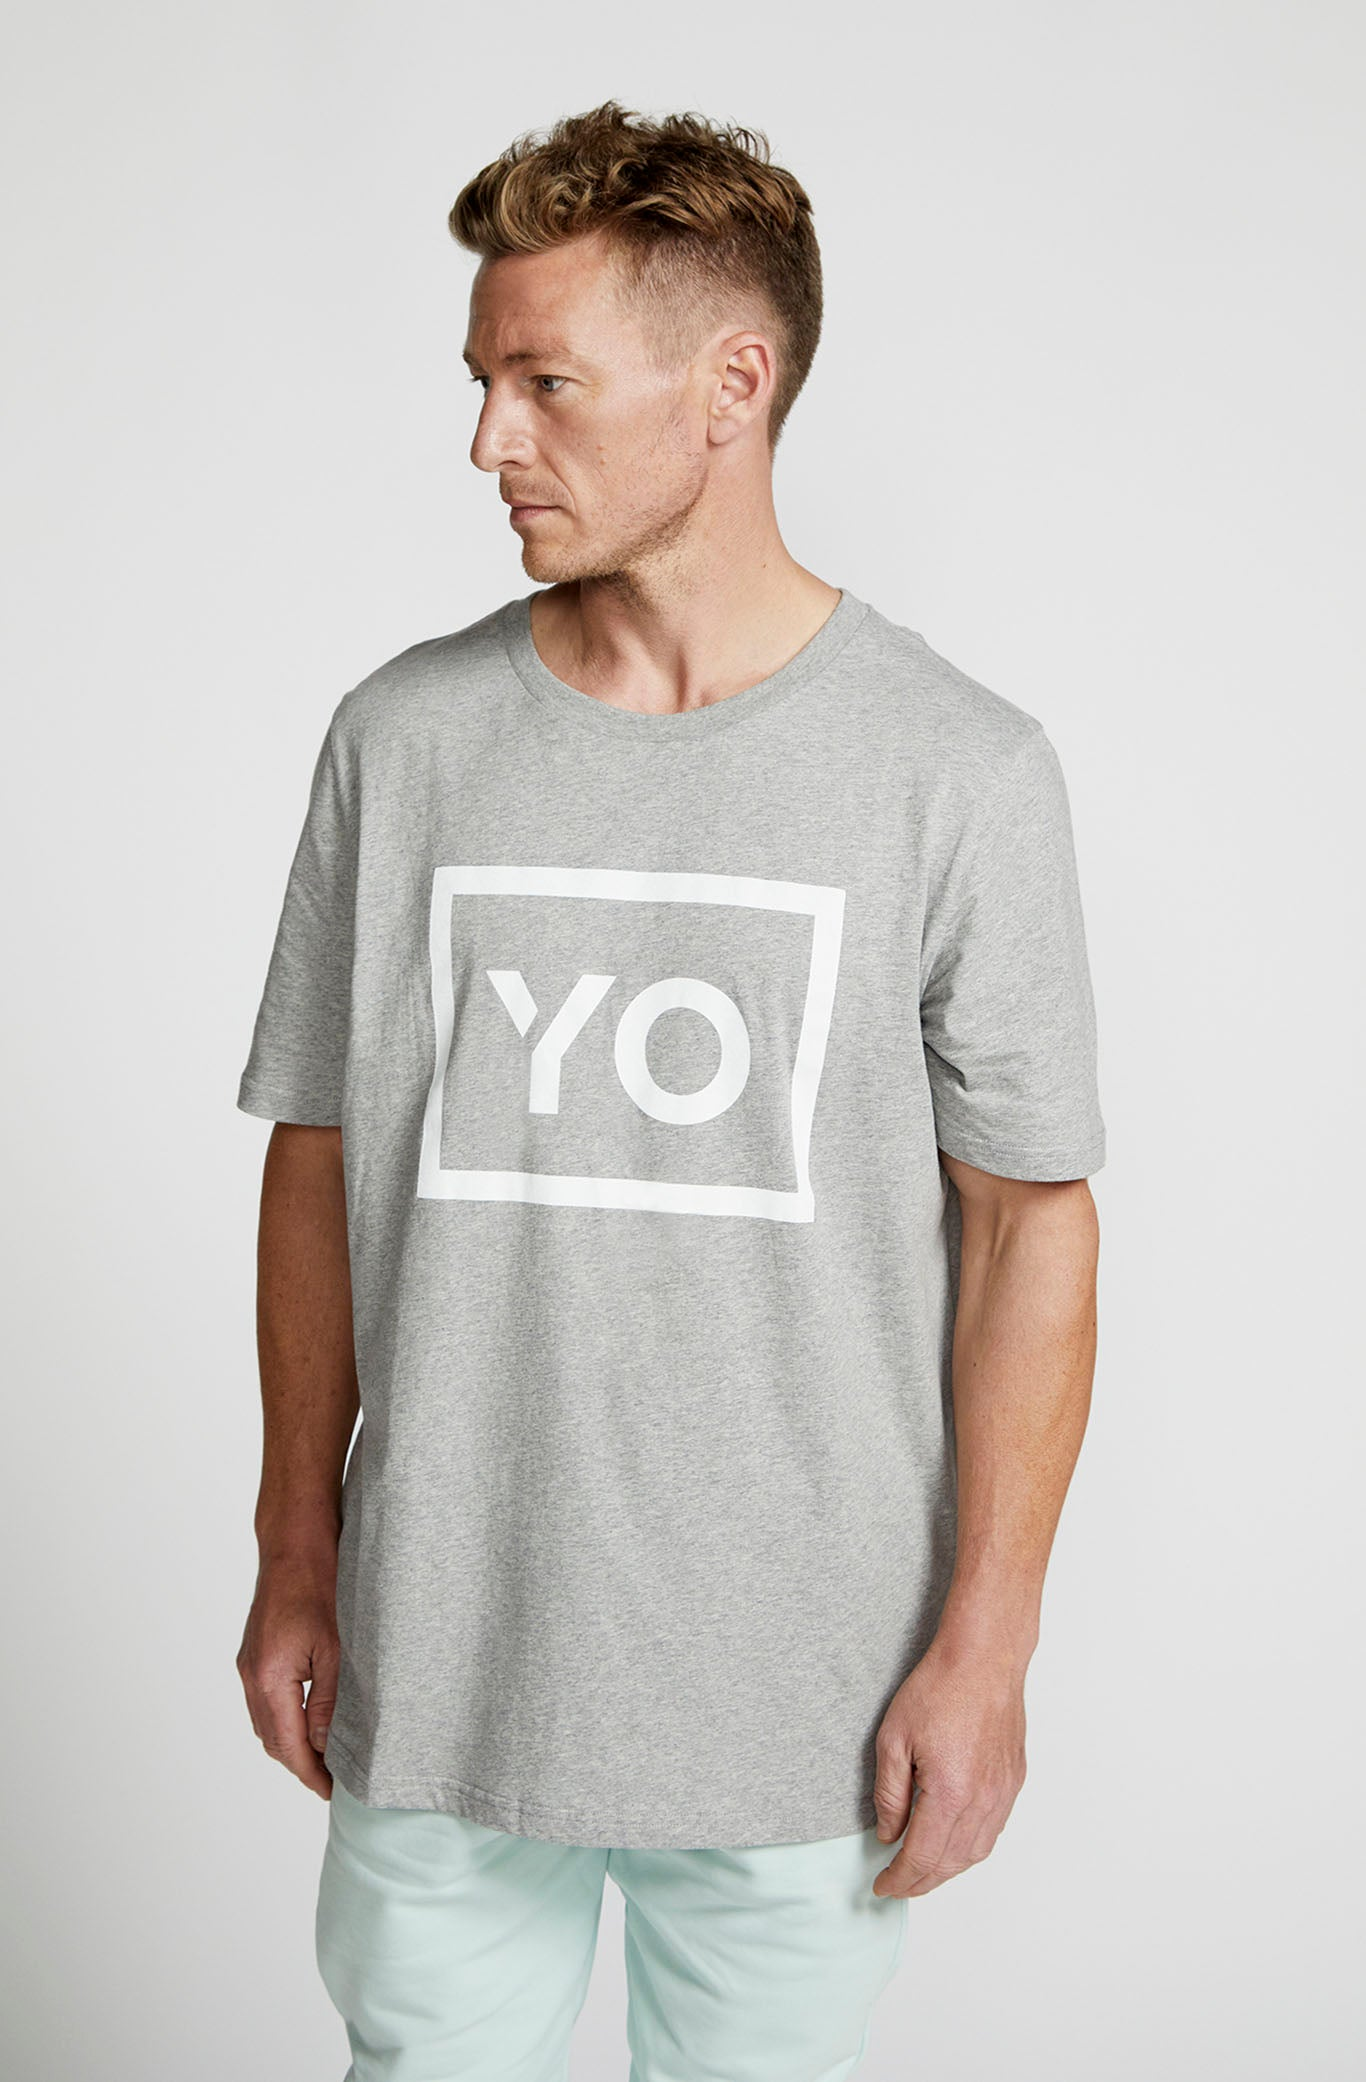 JACOB TEE 3 - YO COLLECTION 2.0 - GREY